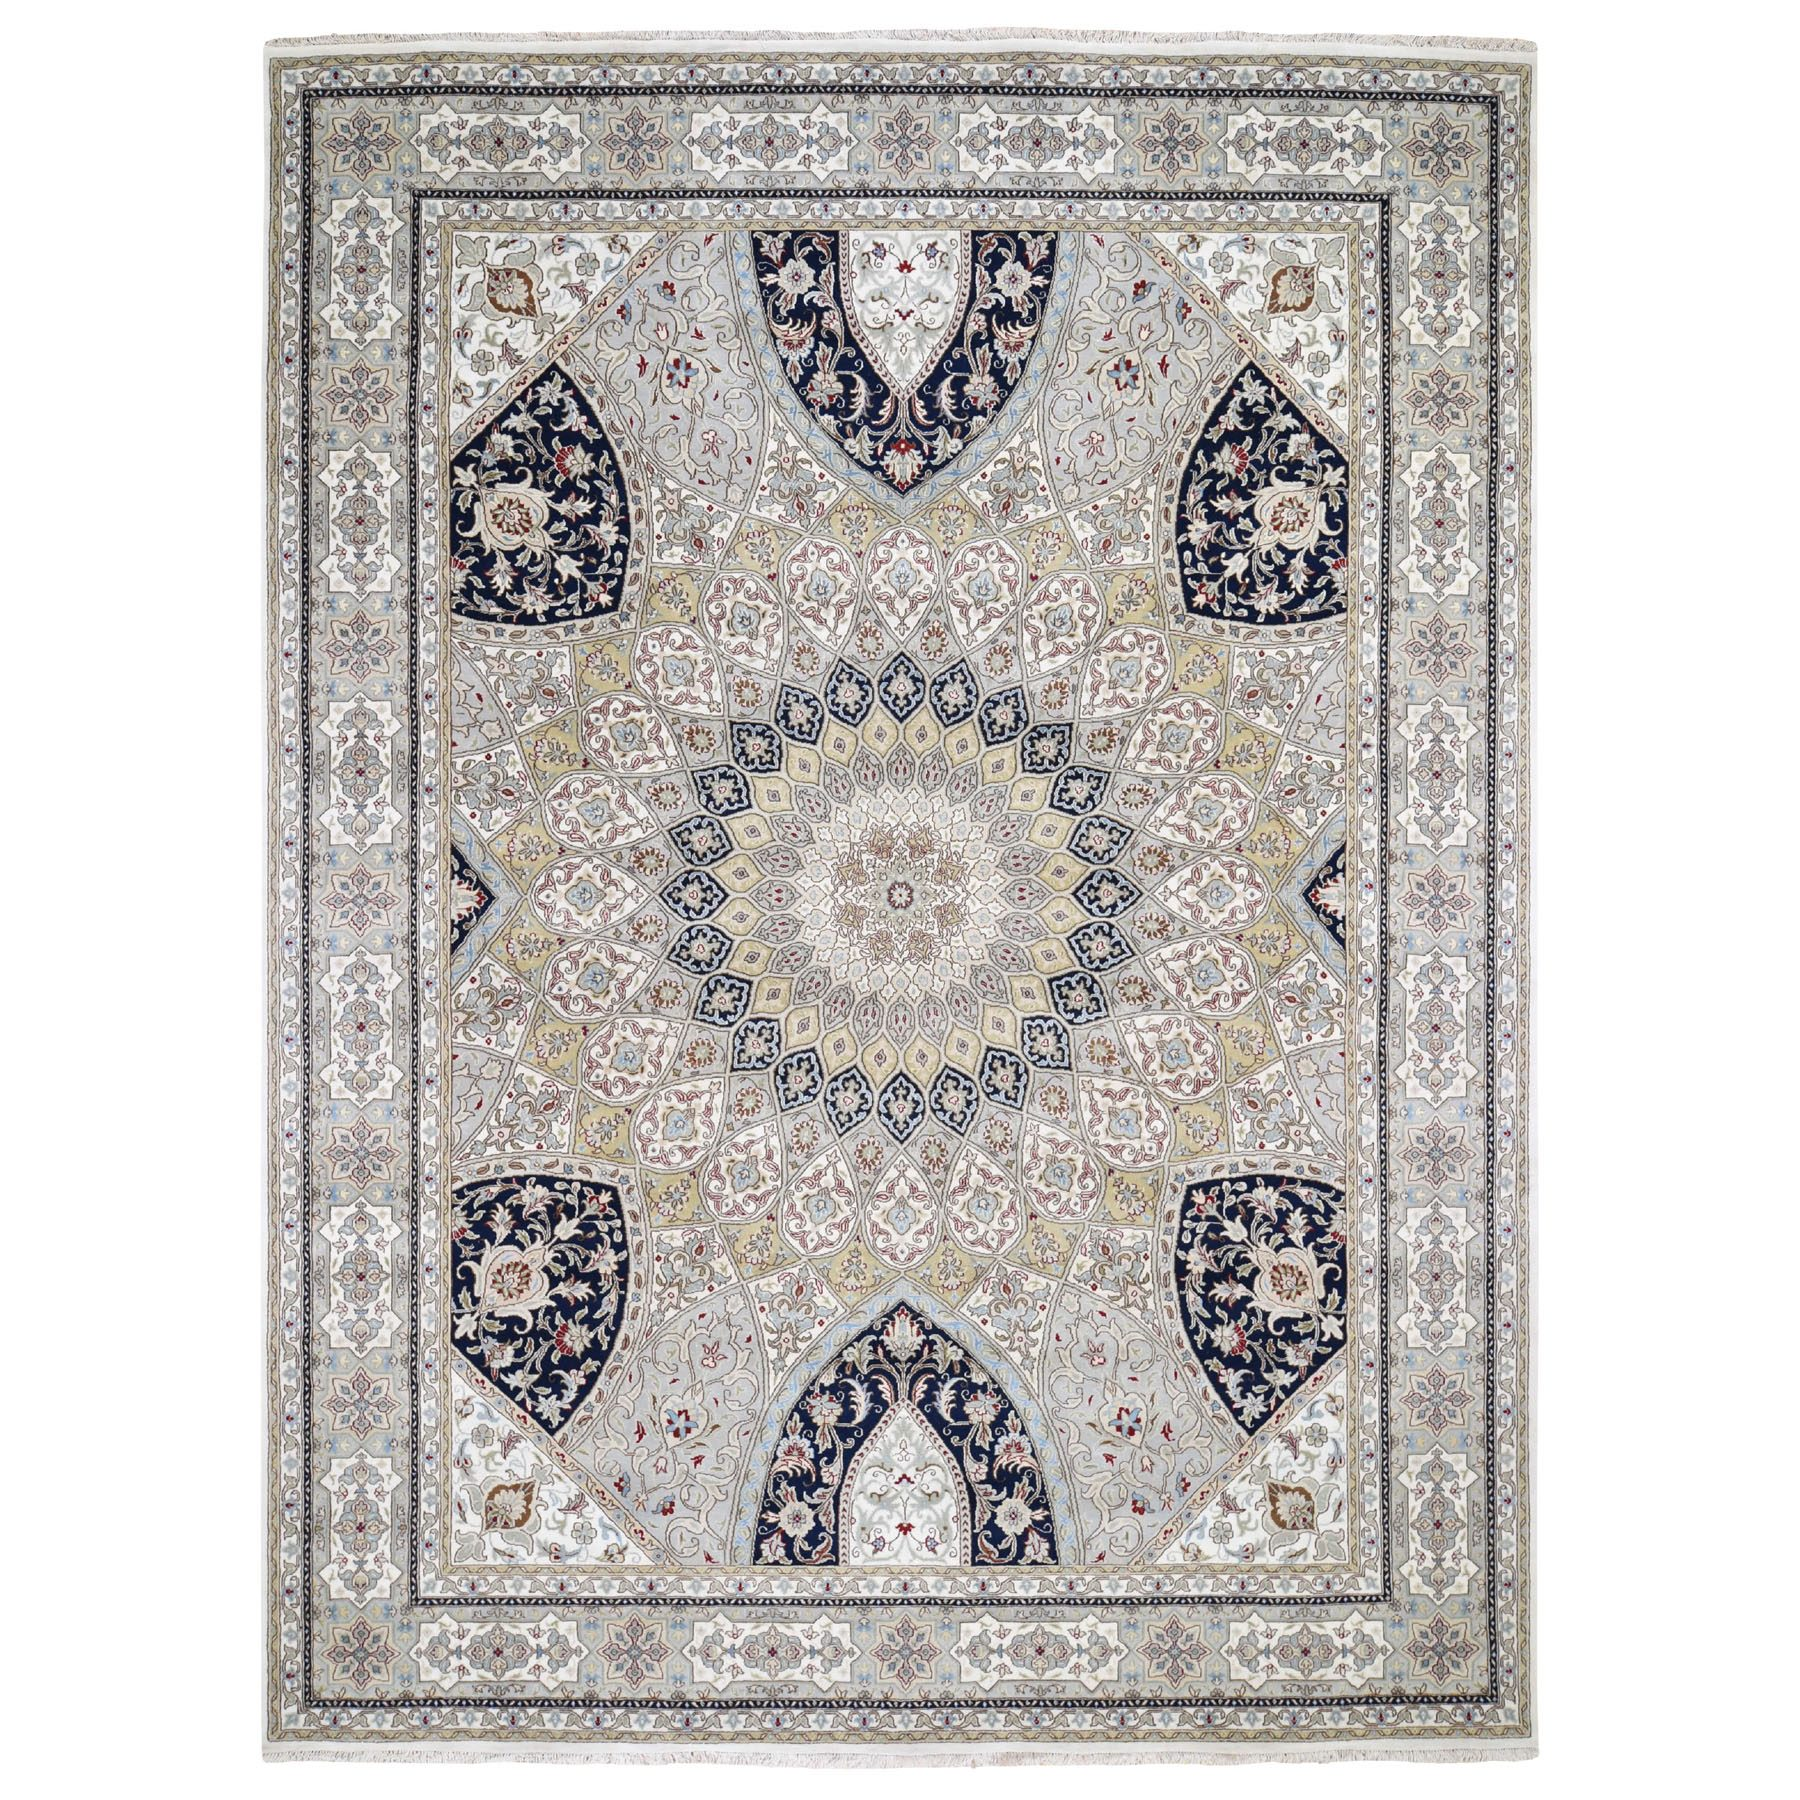 Pirniakan Collection Hand Knotted Grey Rug No: 0195618